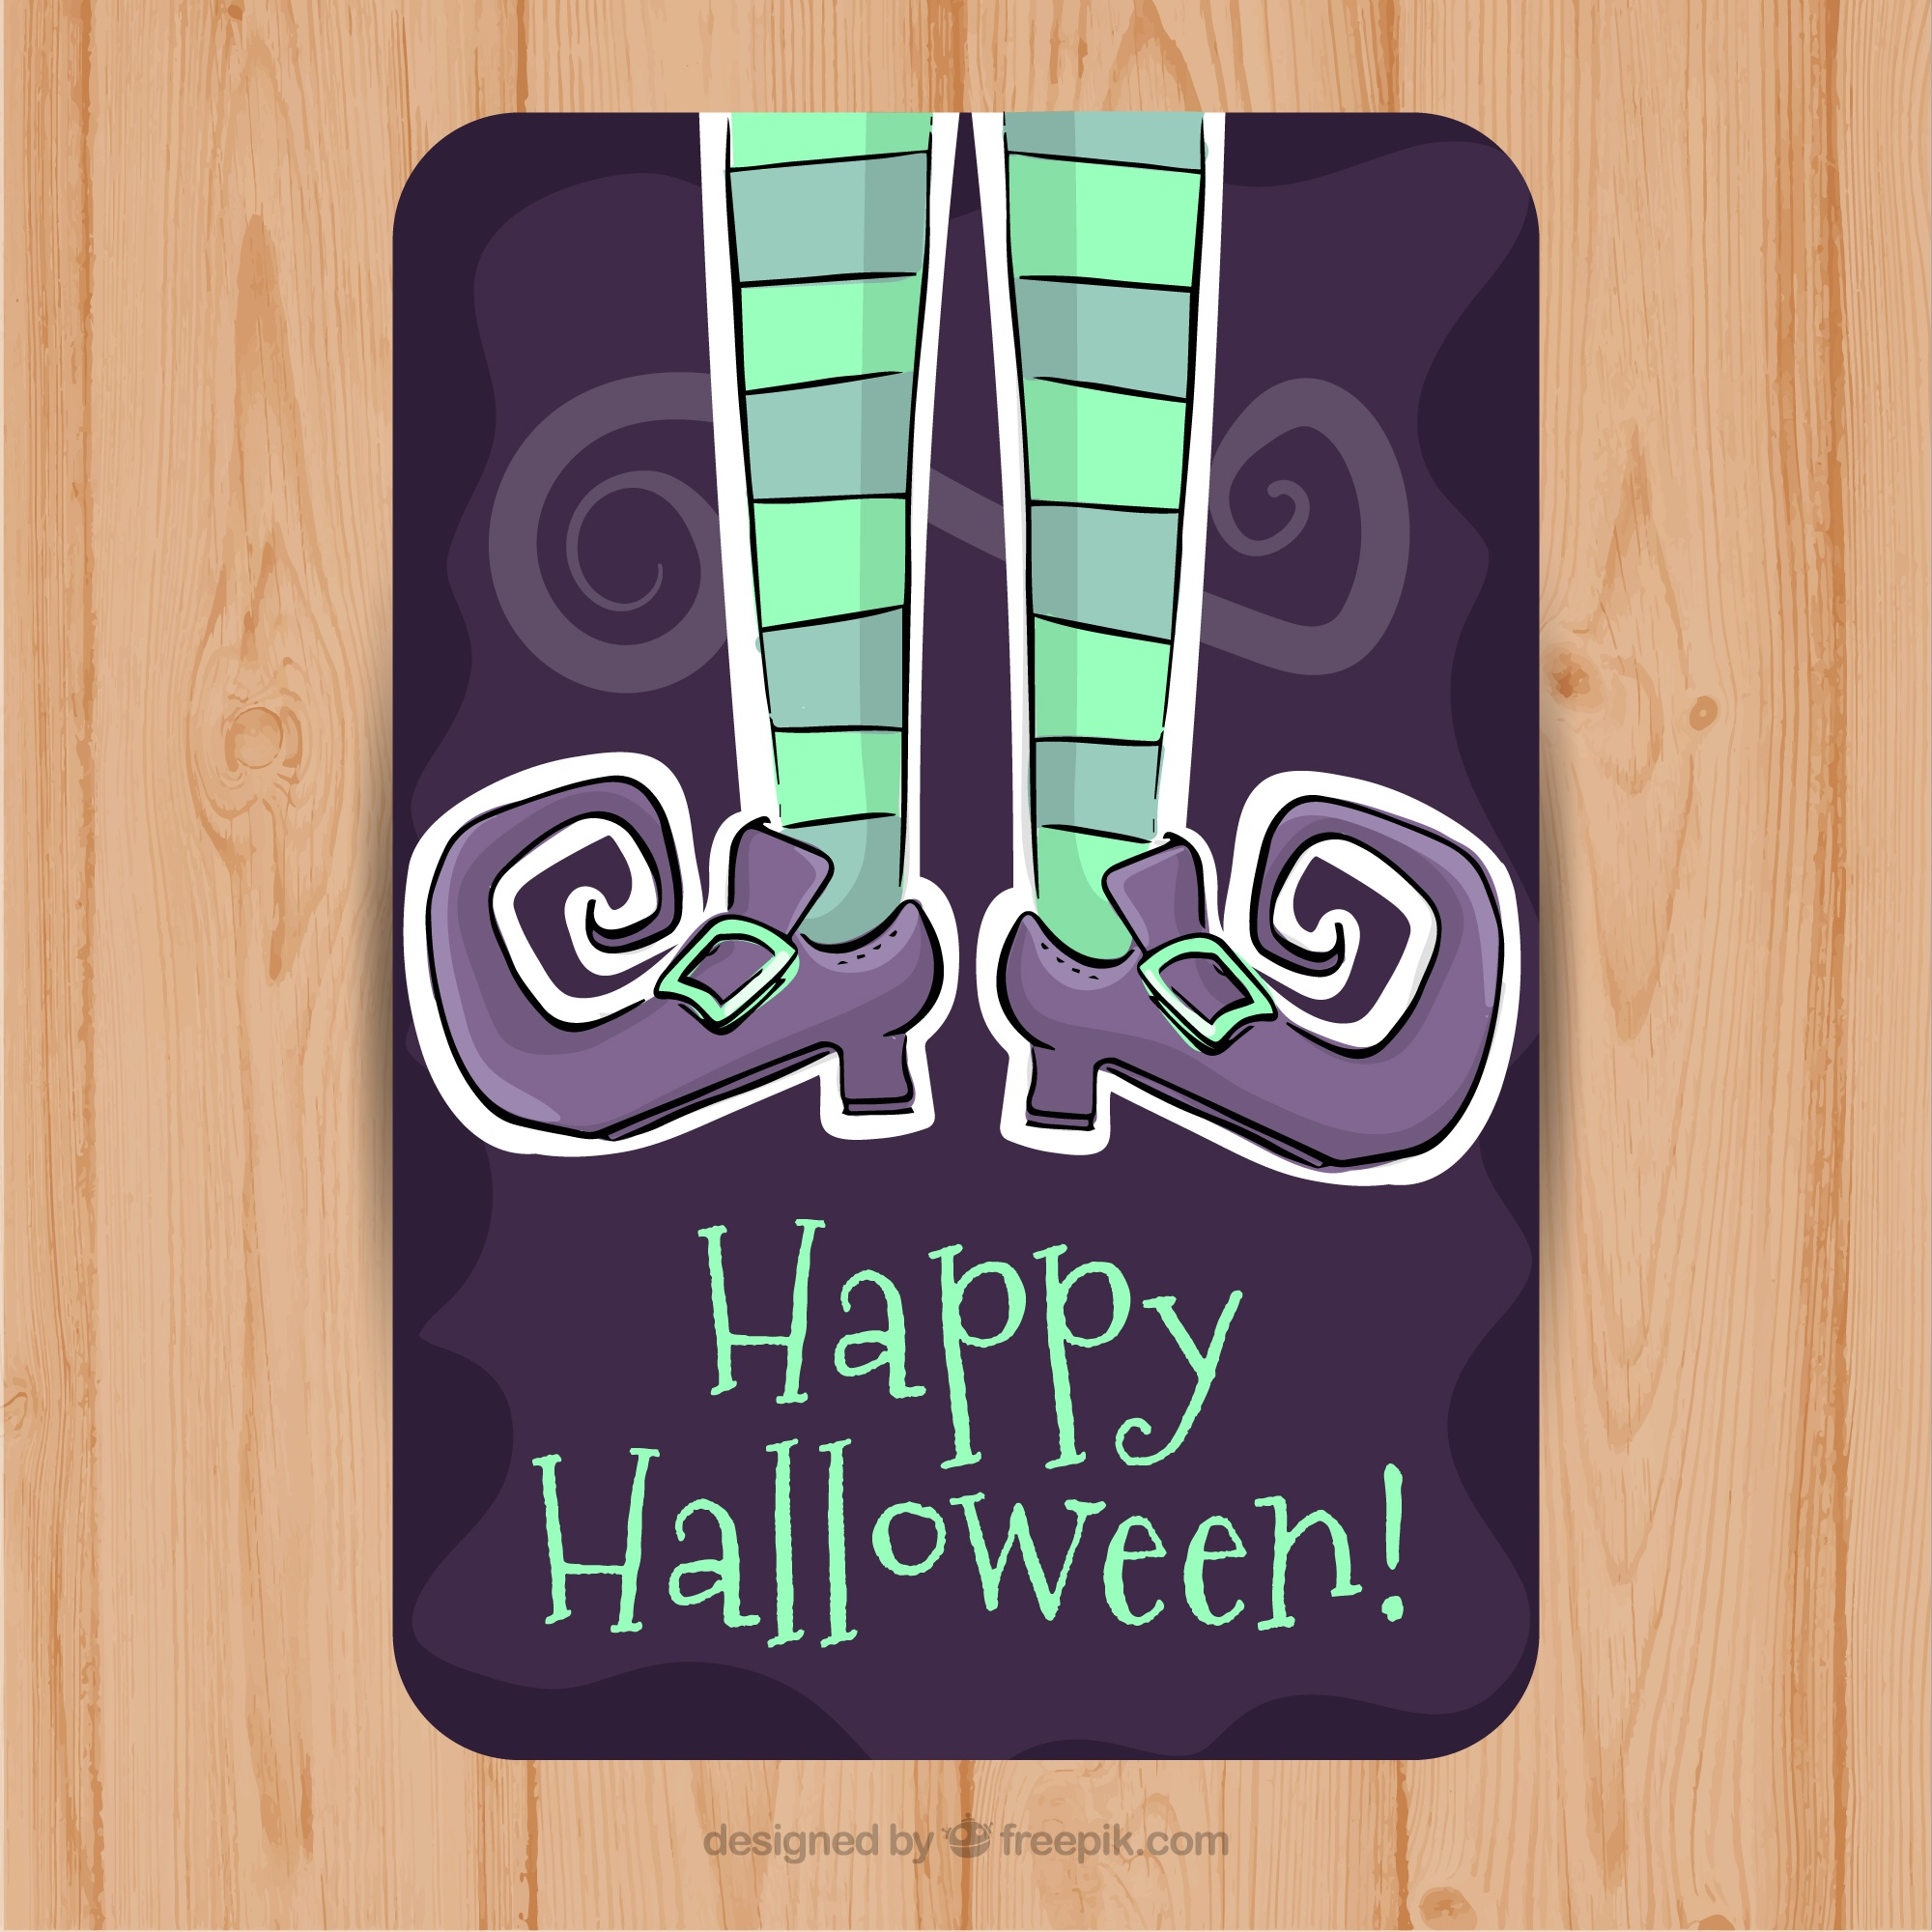 Happy halloween with purple shoes